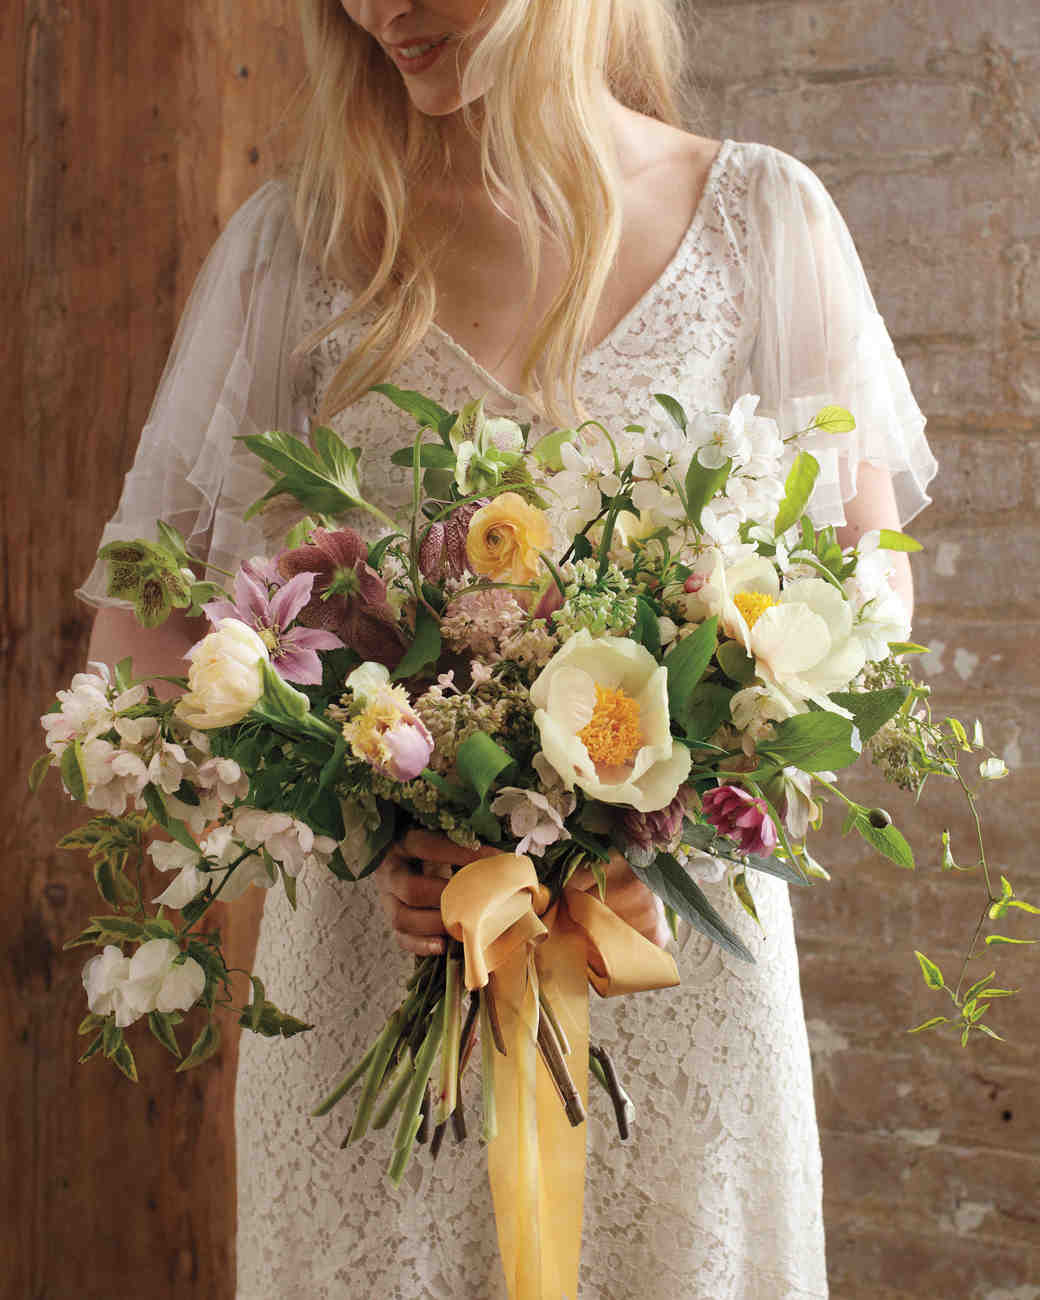 Wedding Flower Arrangements: Spring Wedding Flower Ideas From The Industry's Best